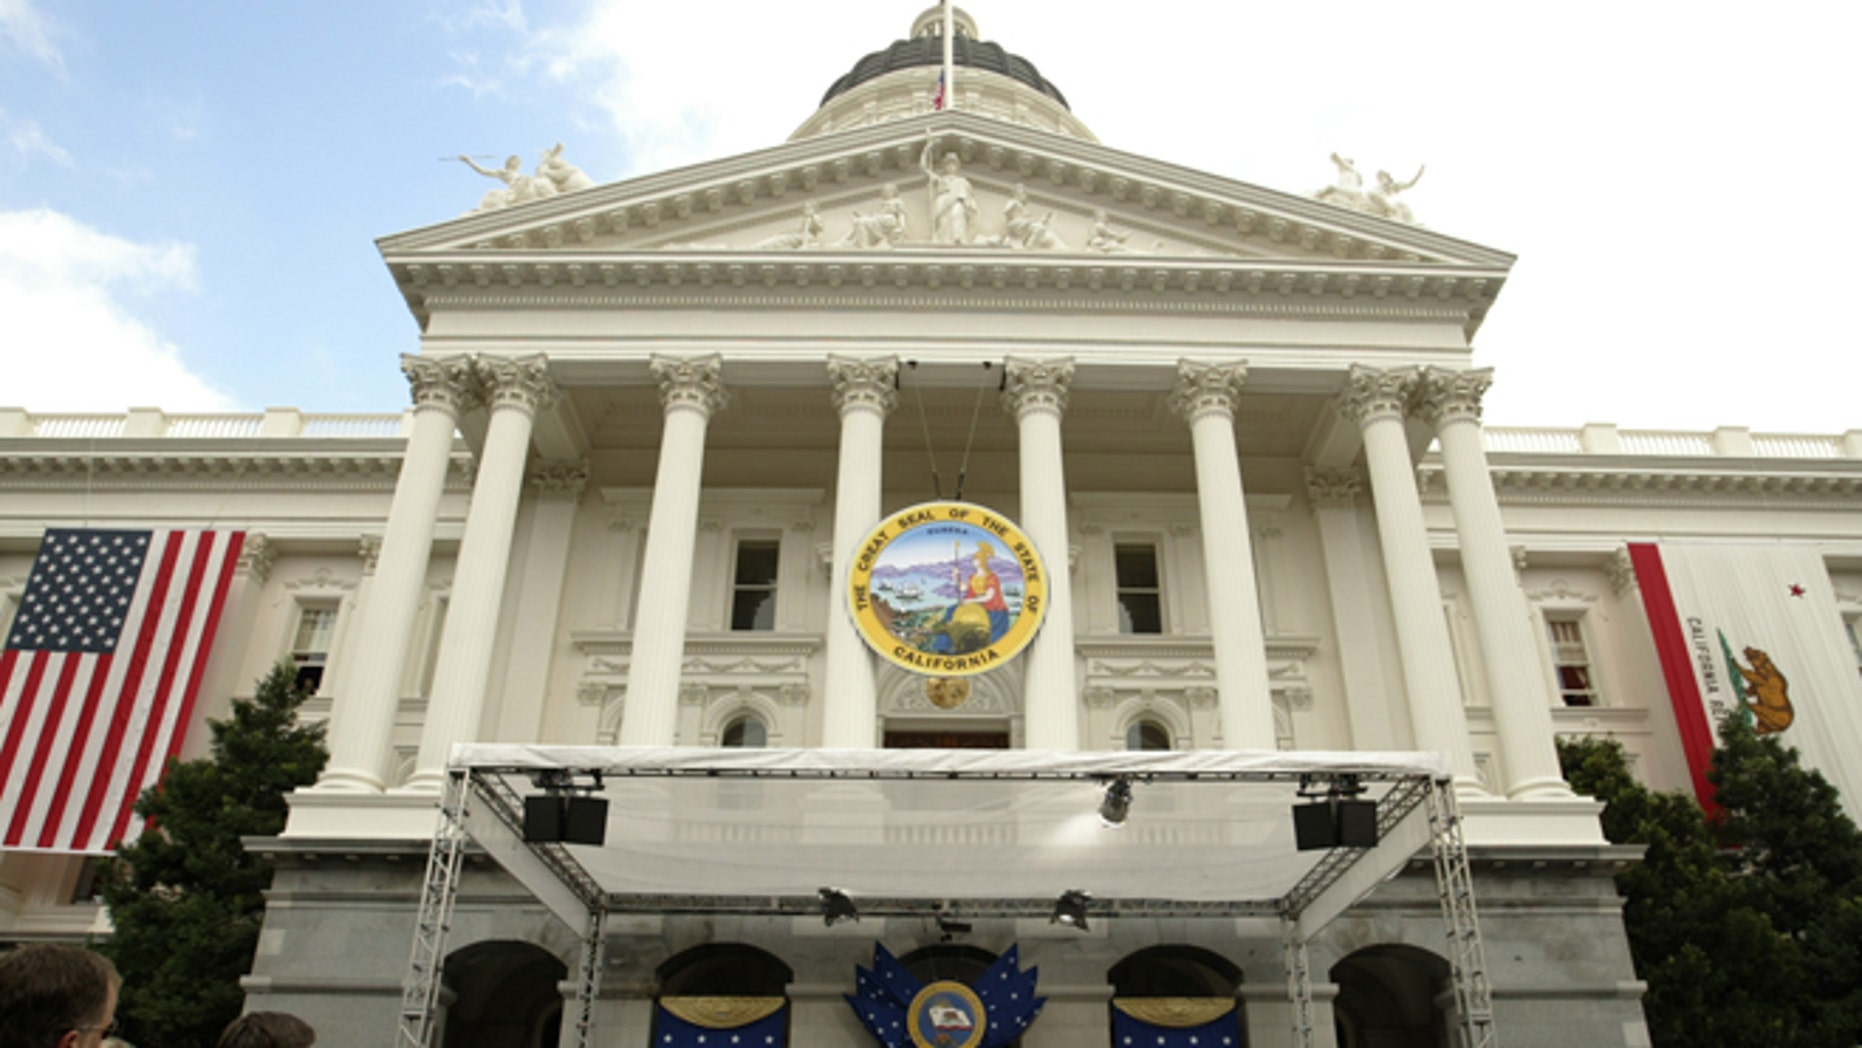 FILE: 2003: The California state capital building in Sacramento, Calif.